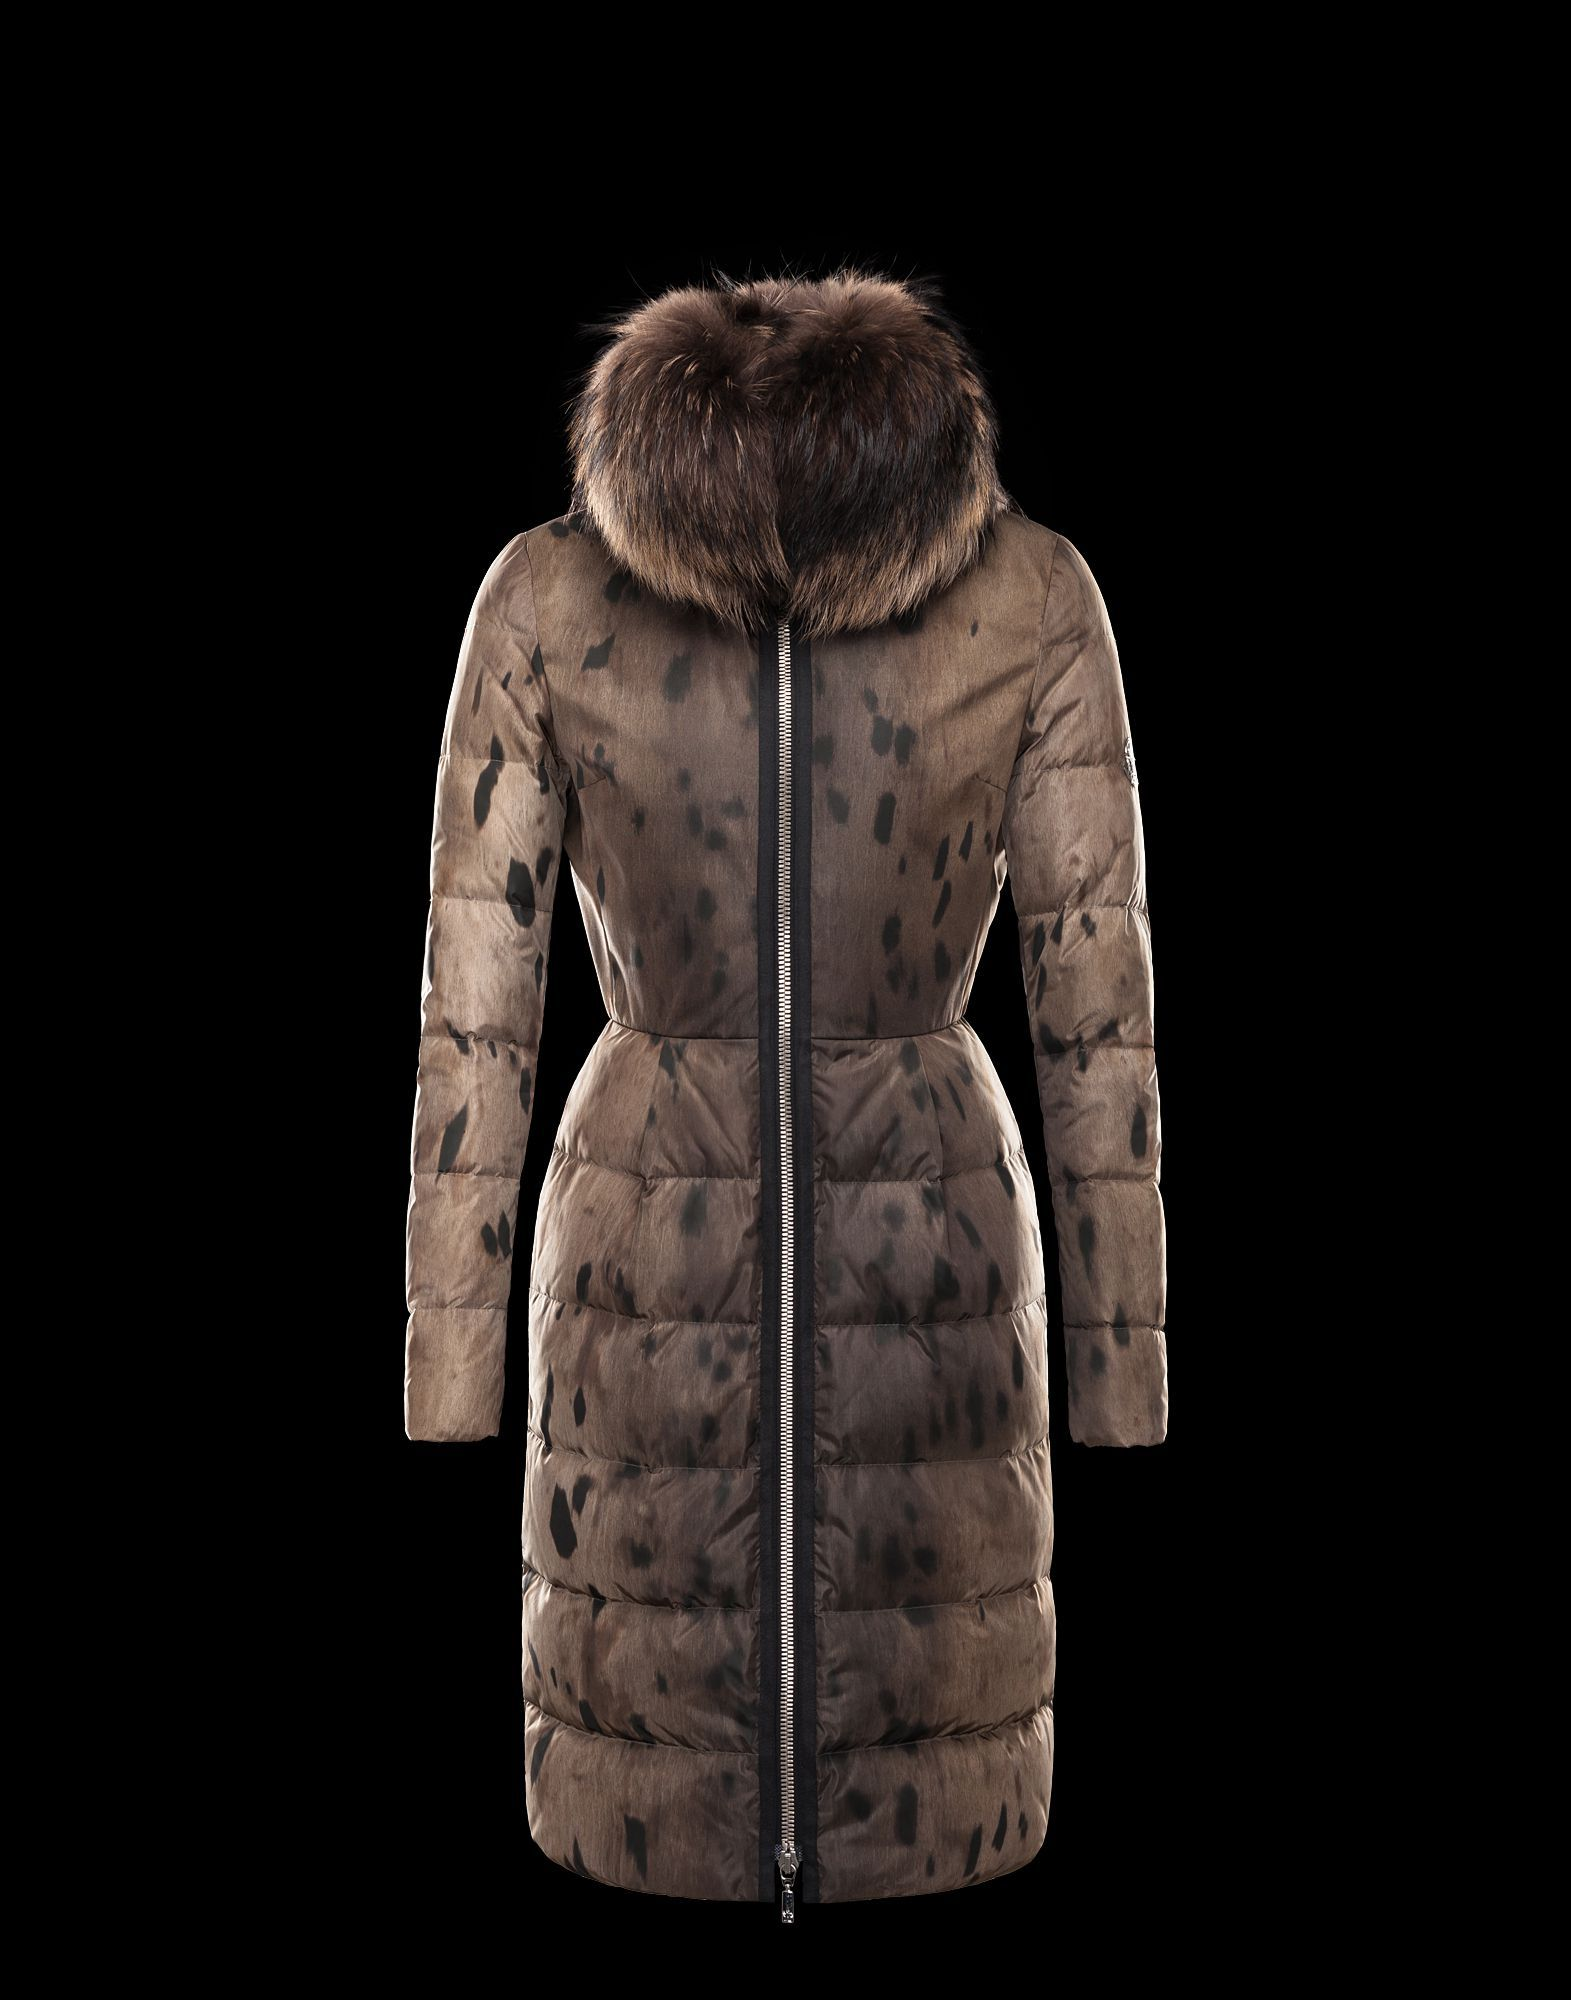 503d162bc Heavy jacket Women Moncler - Original products on store.moncler.com ...